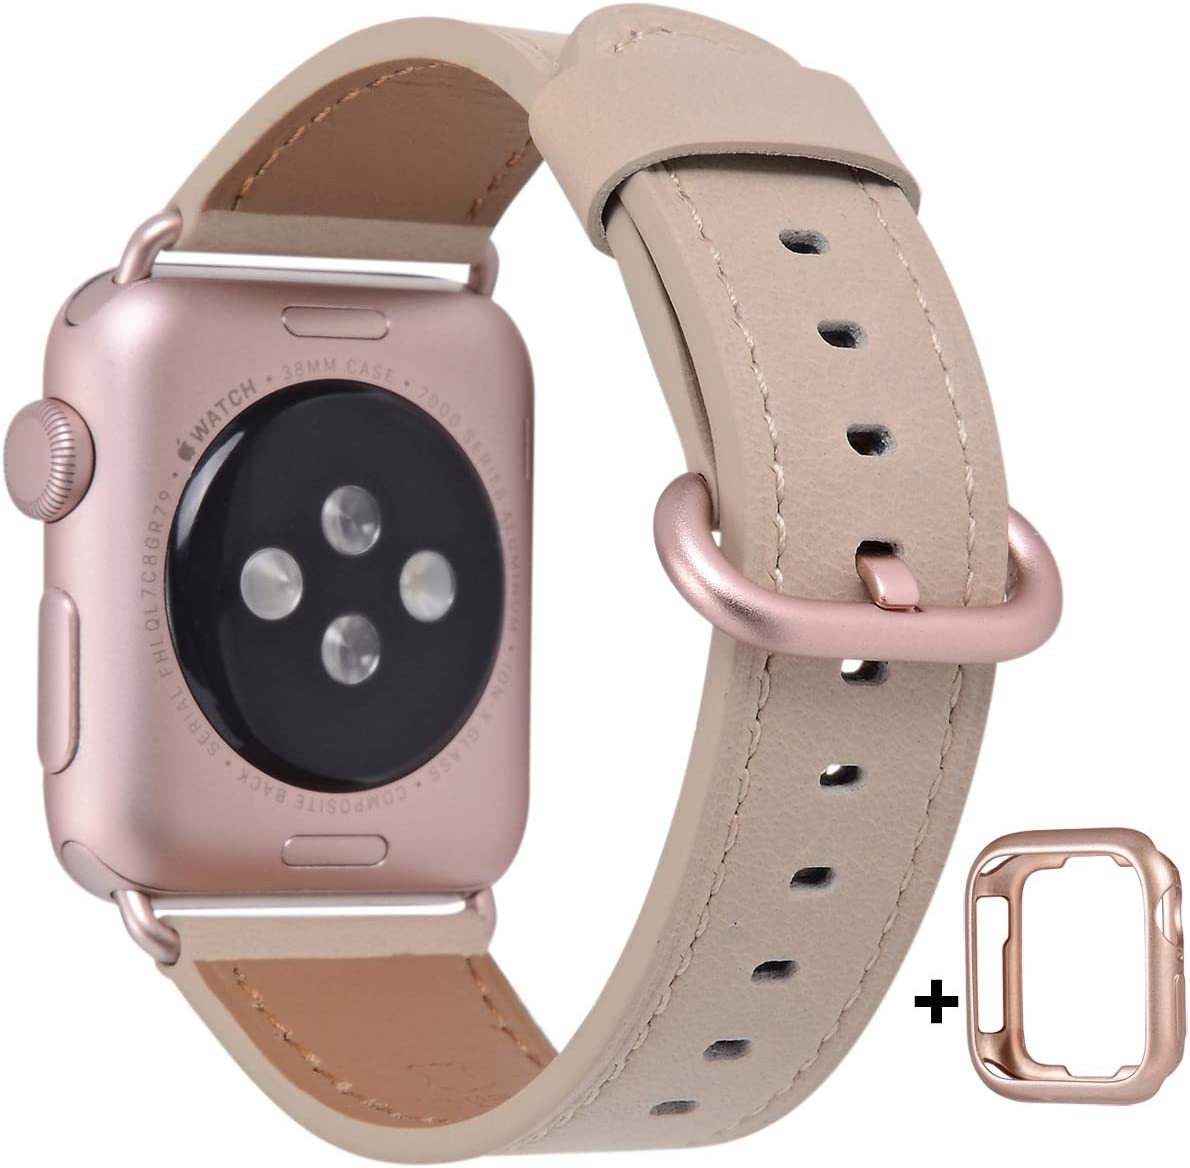 JSGJMY Compatible with Apple Watch Band 38mm 40mm 42mm 44mm Women Men Genuine Leather Replacement Strap for iWatch Series SE 6 5 4 3 2 1 (Light tan with Rose Pink Clasp, 38mm/40mm S/M)